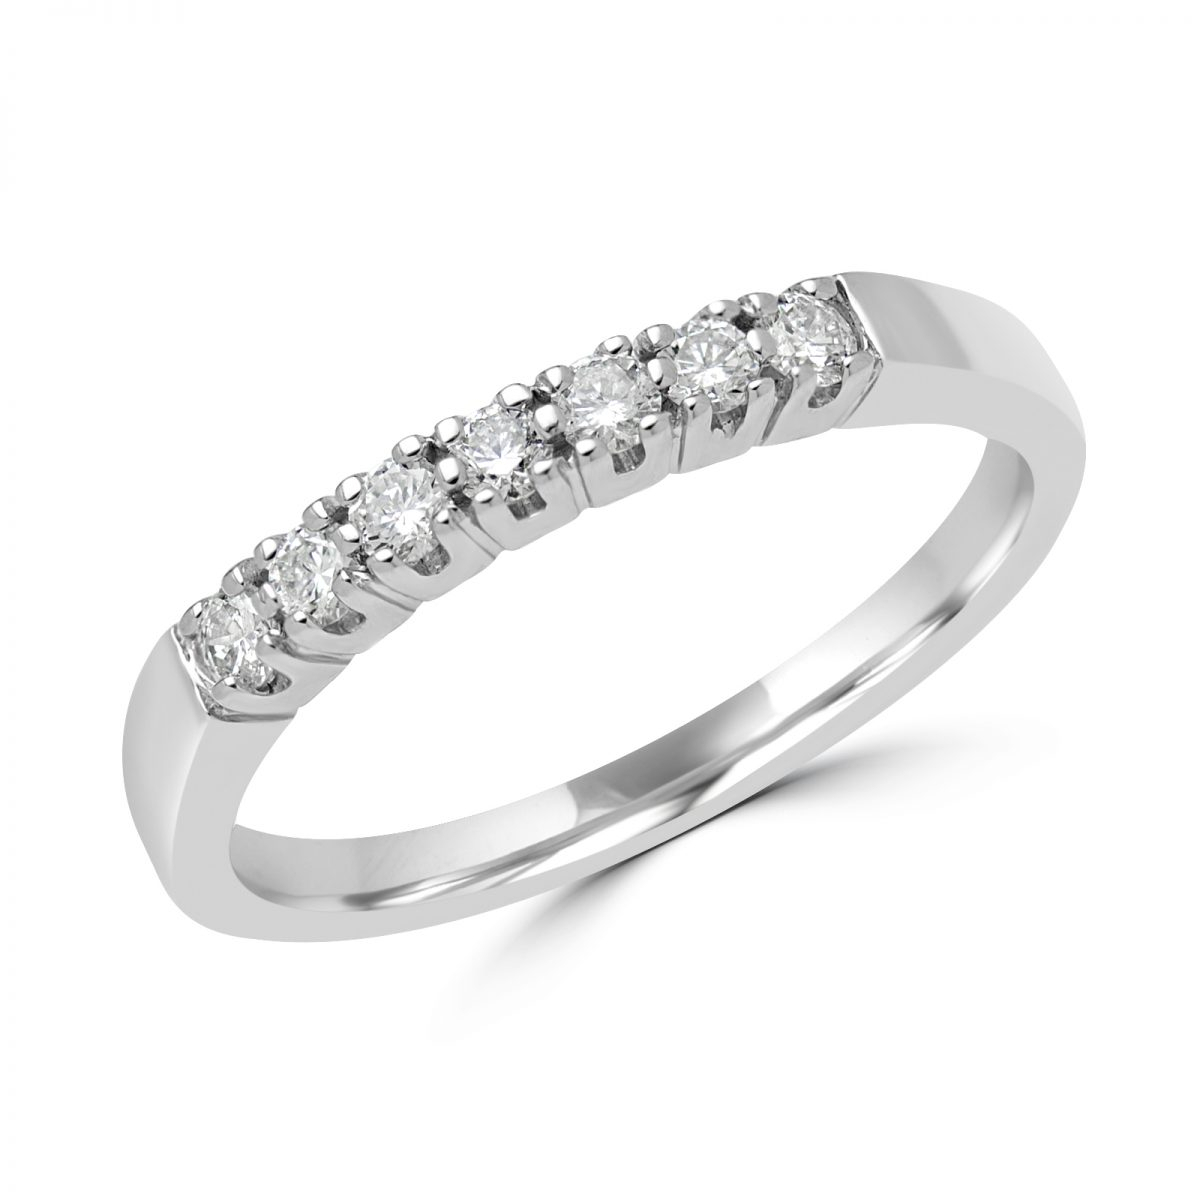 7 Stone Diamond Anniversary Band In White Gold For Most Recent Diamond Seven Stone Anniversary Bands In White Gold (Gallery 9 of 25)